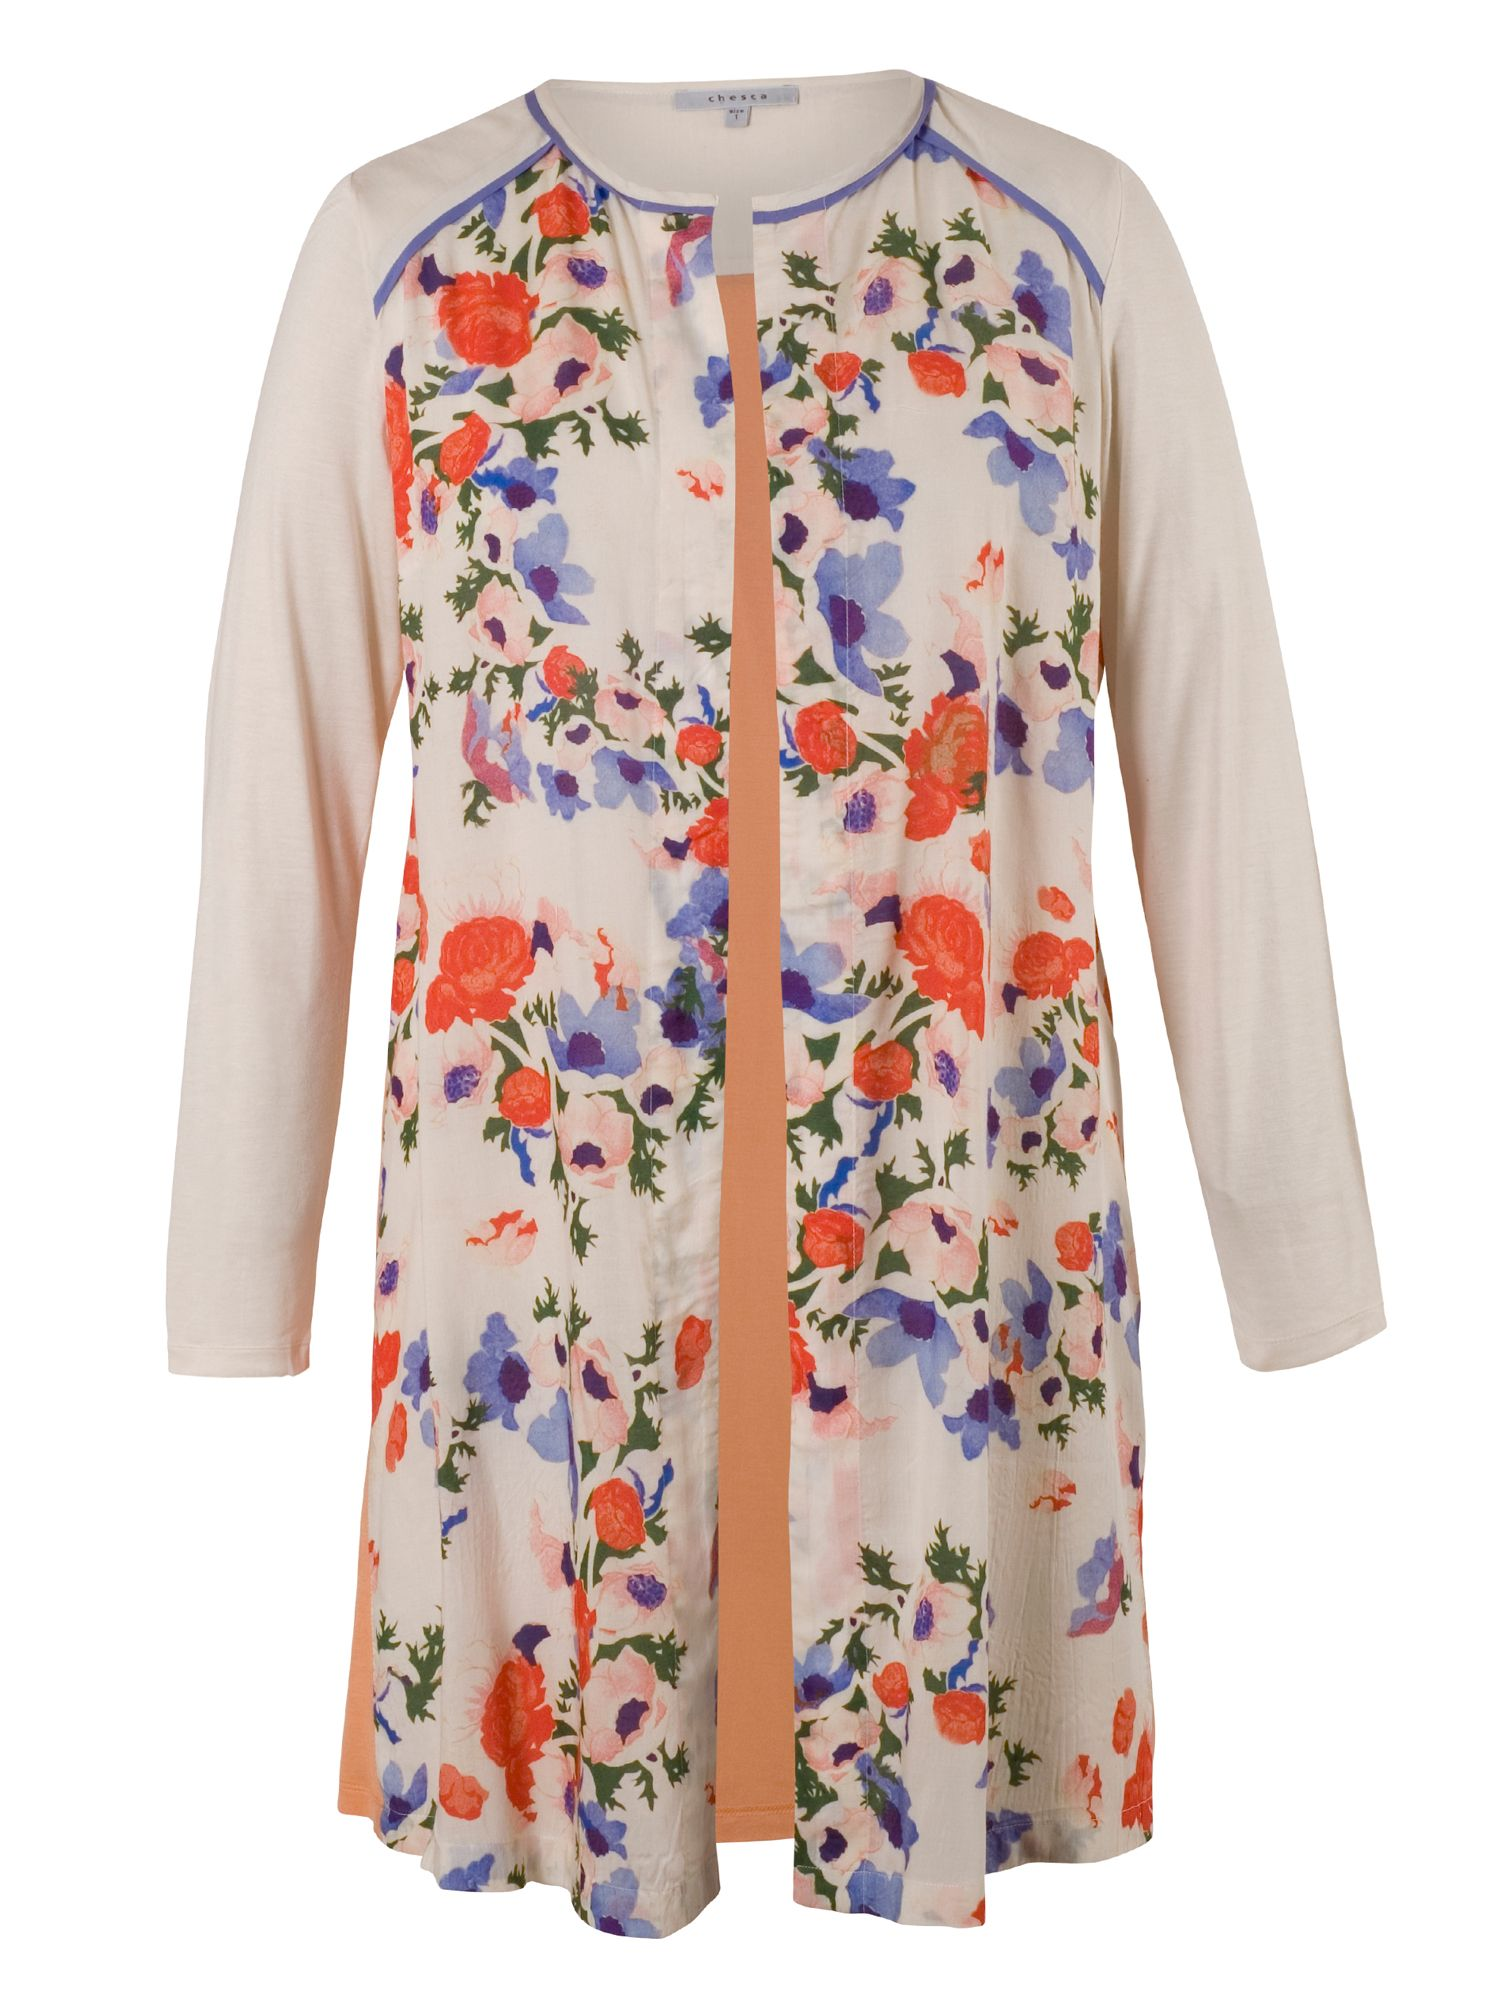 Chesca Floral Coverup with Contrast Yoke, Cream